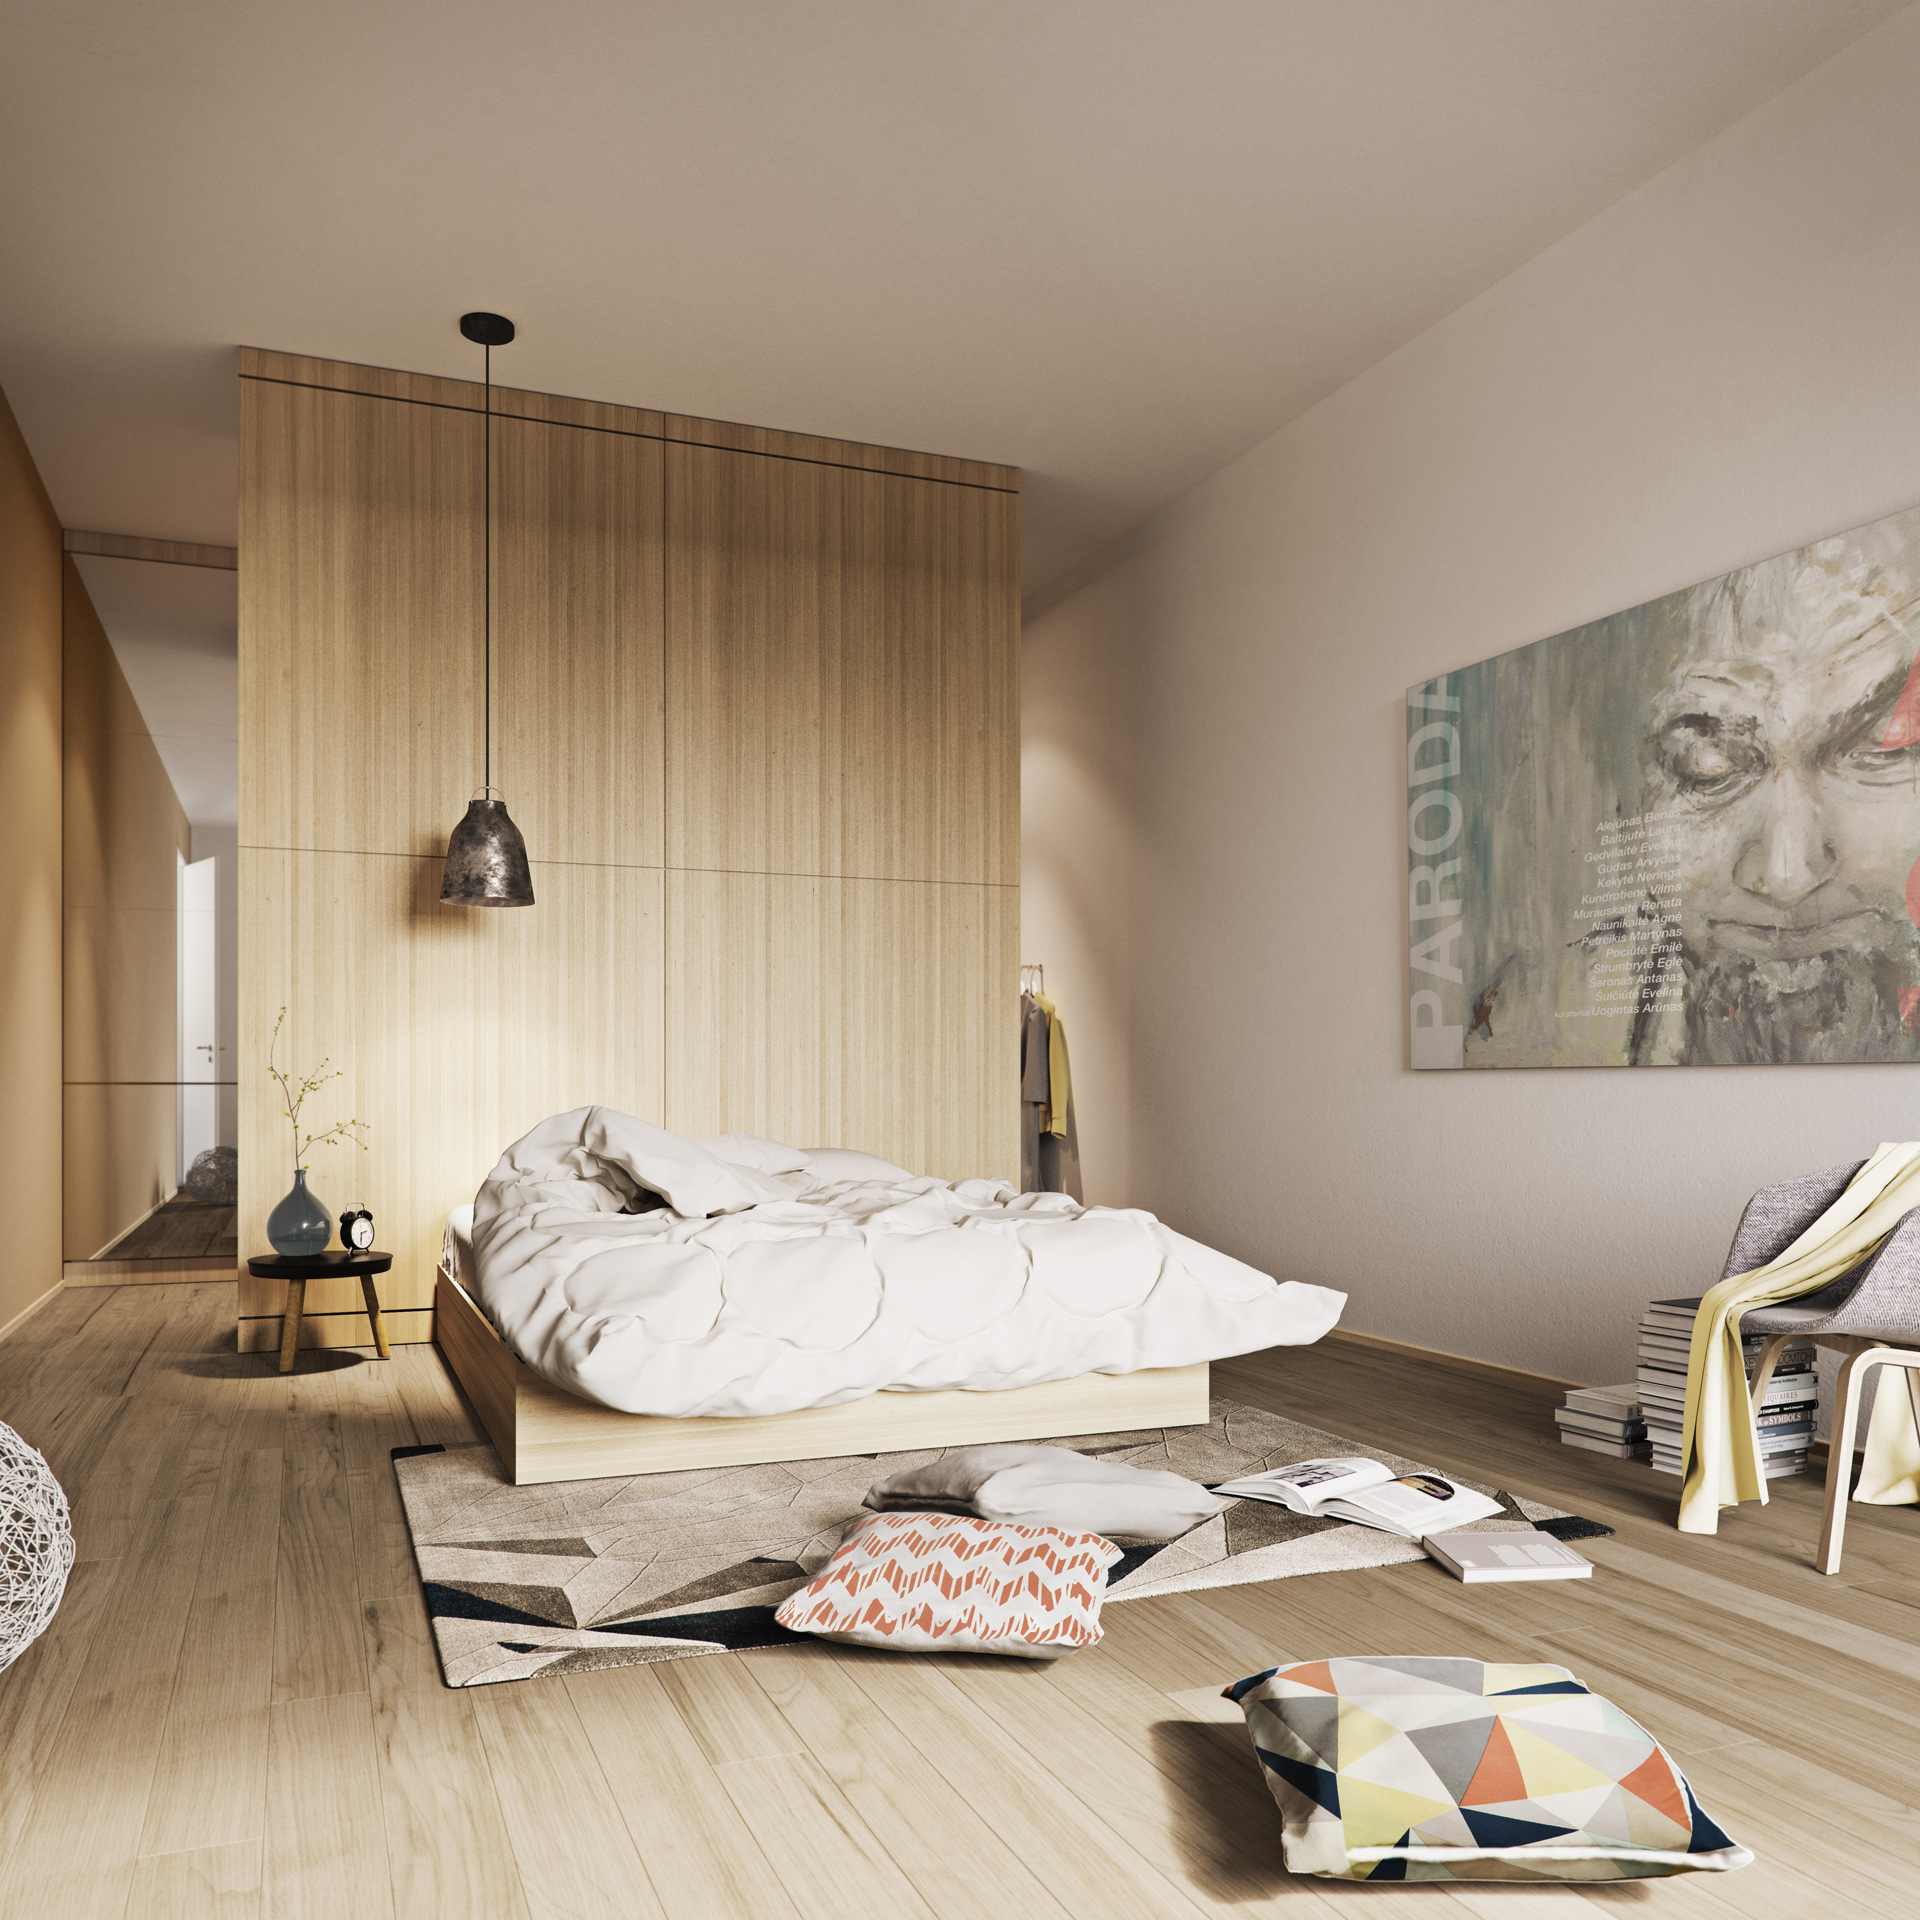 A Space_bedroom_architectural_visual_by_xoio